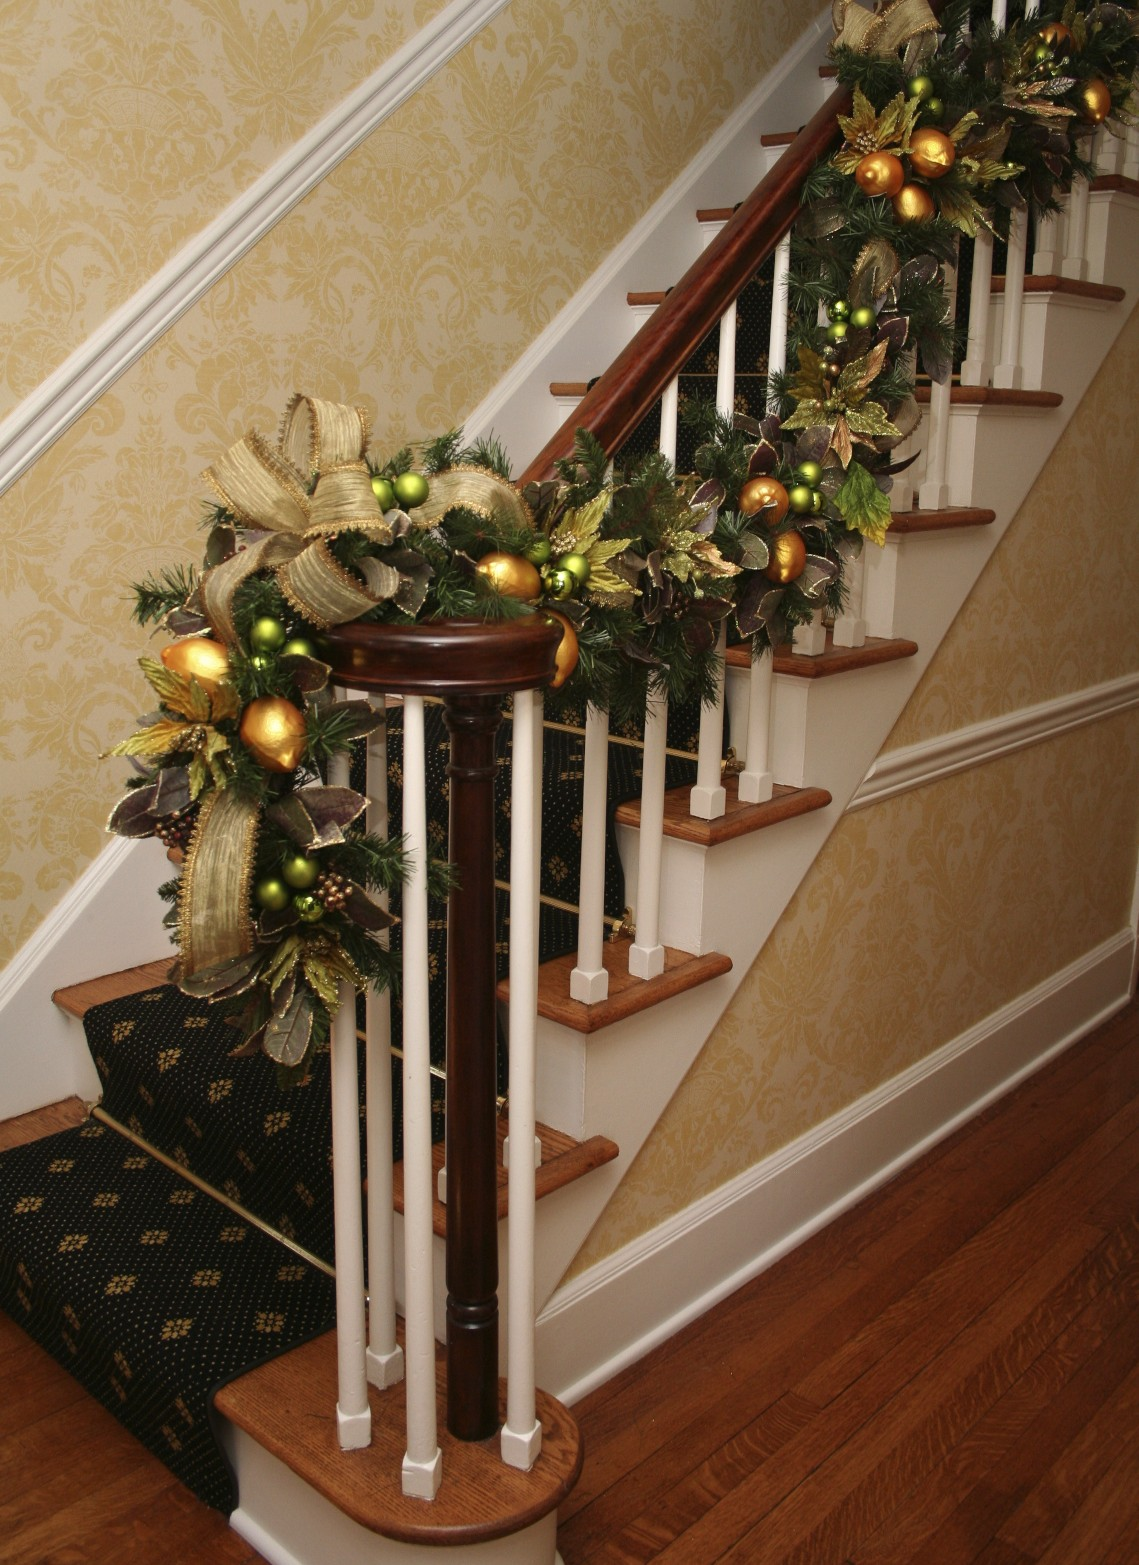 Decorating banisters for christmas with ribbon - A Christmas Twist